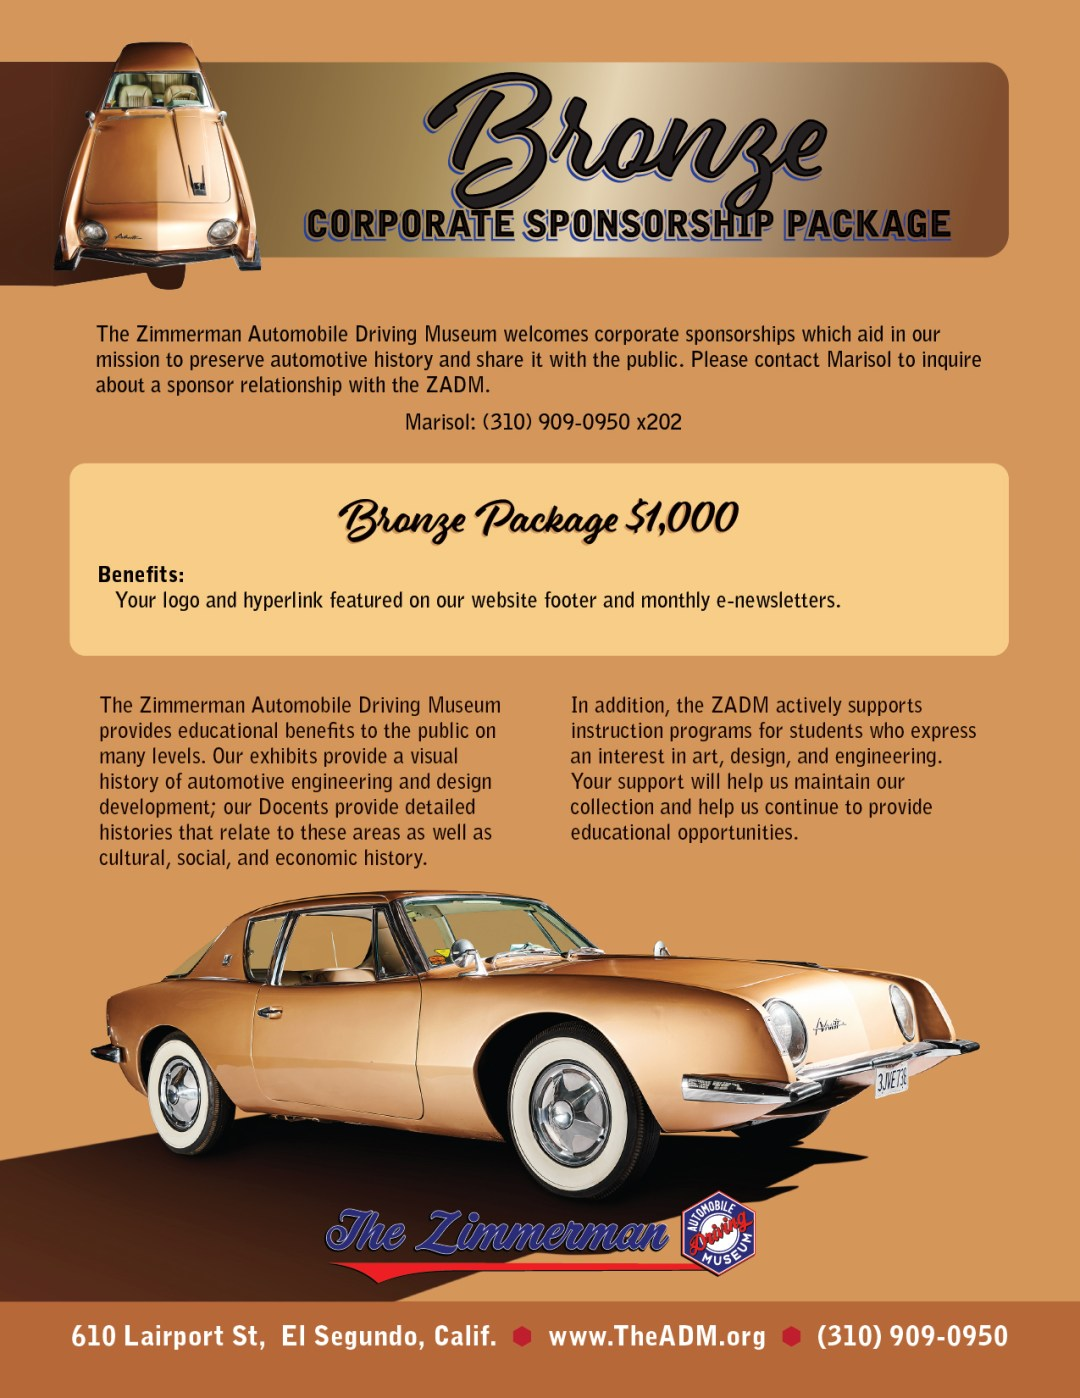 Bronze Corporate Sponsorship Package one Sheets v2-04